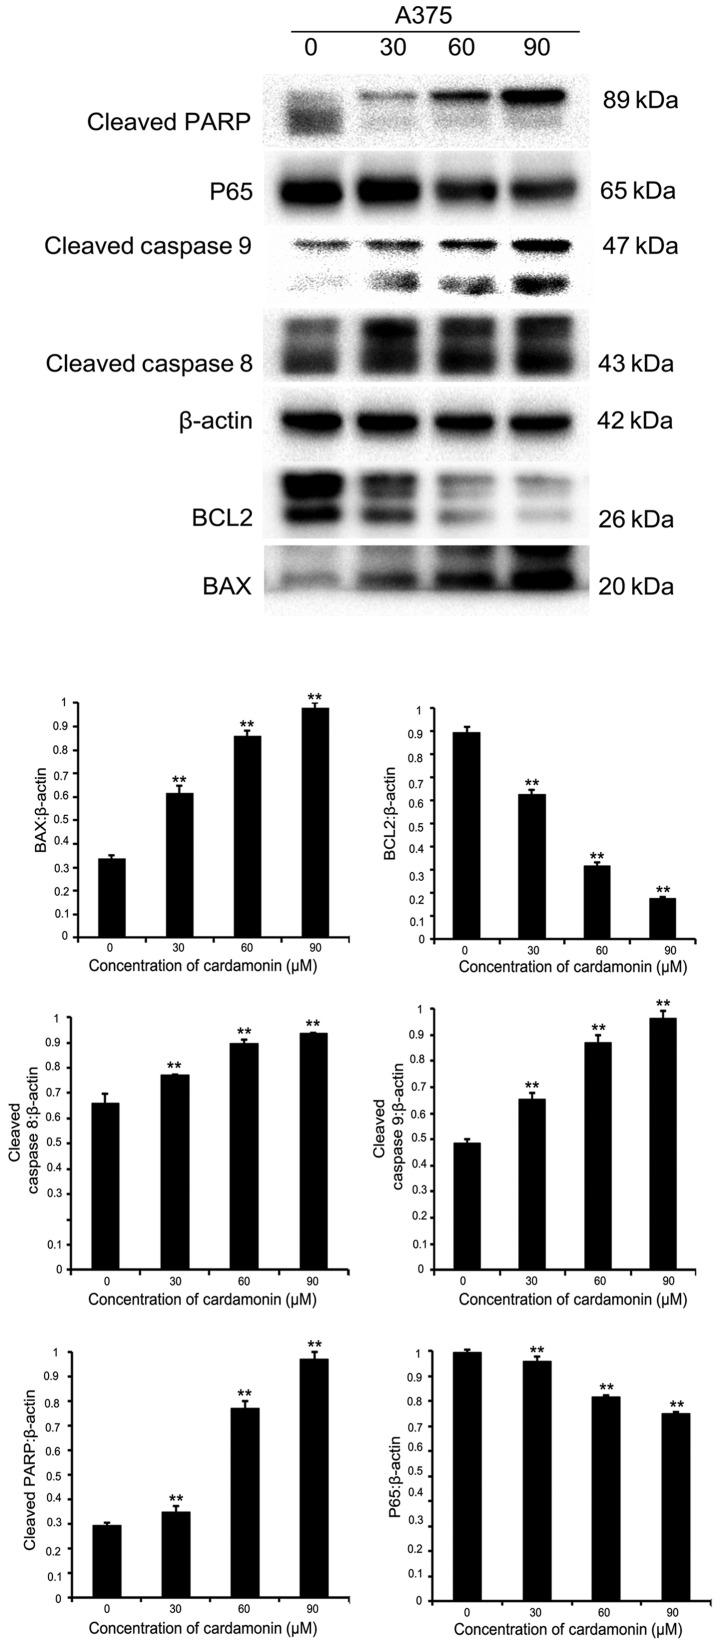 Protein expression of Bax, BCL2, cleaved caspase-8, cleaved caspase-9, cleaved PARP, NF-κB p65 in A375 cell line is detected by western blot analysis. β-actin was used as an internal control. Significance levels between distinct groups were determined using one-way analysis of variance. **P≤0.01 vs. the control. PARP, poly (ADP-ribose) polymerase; BCL2, B-cell lymphoma-2.